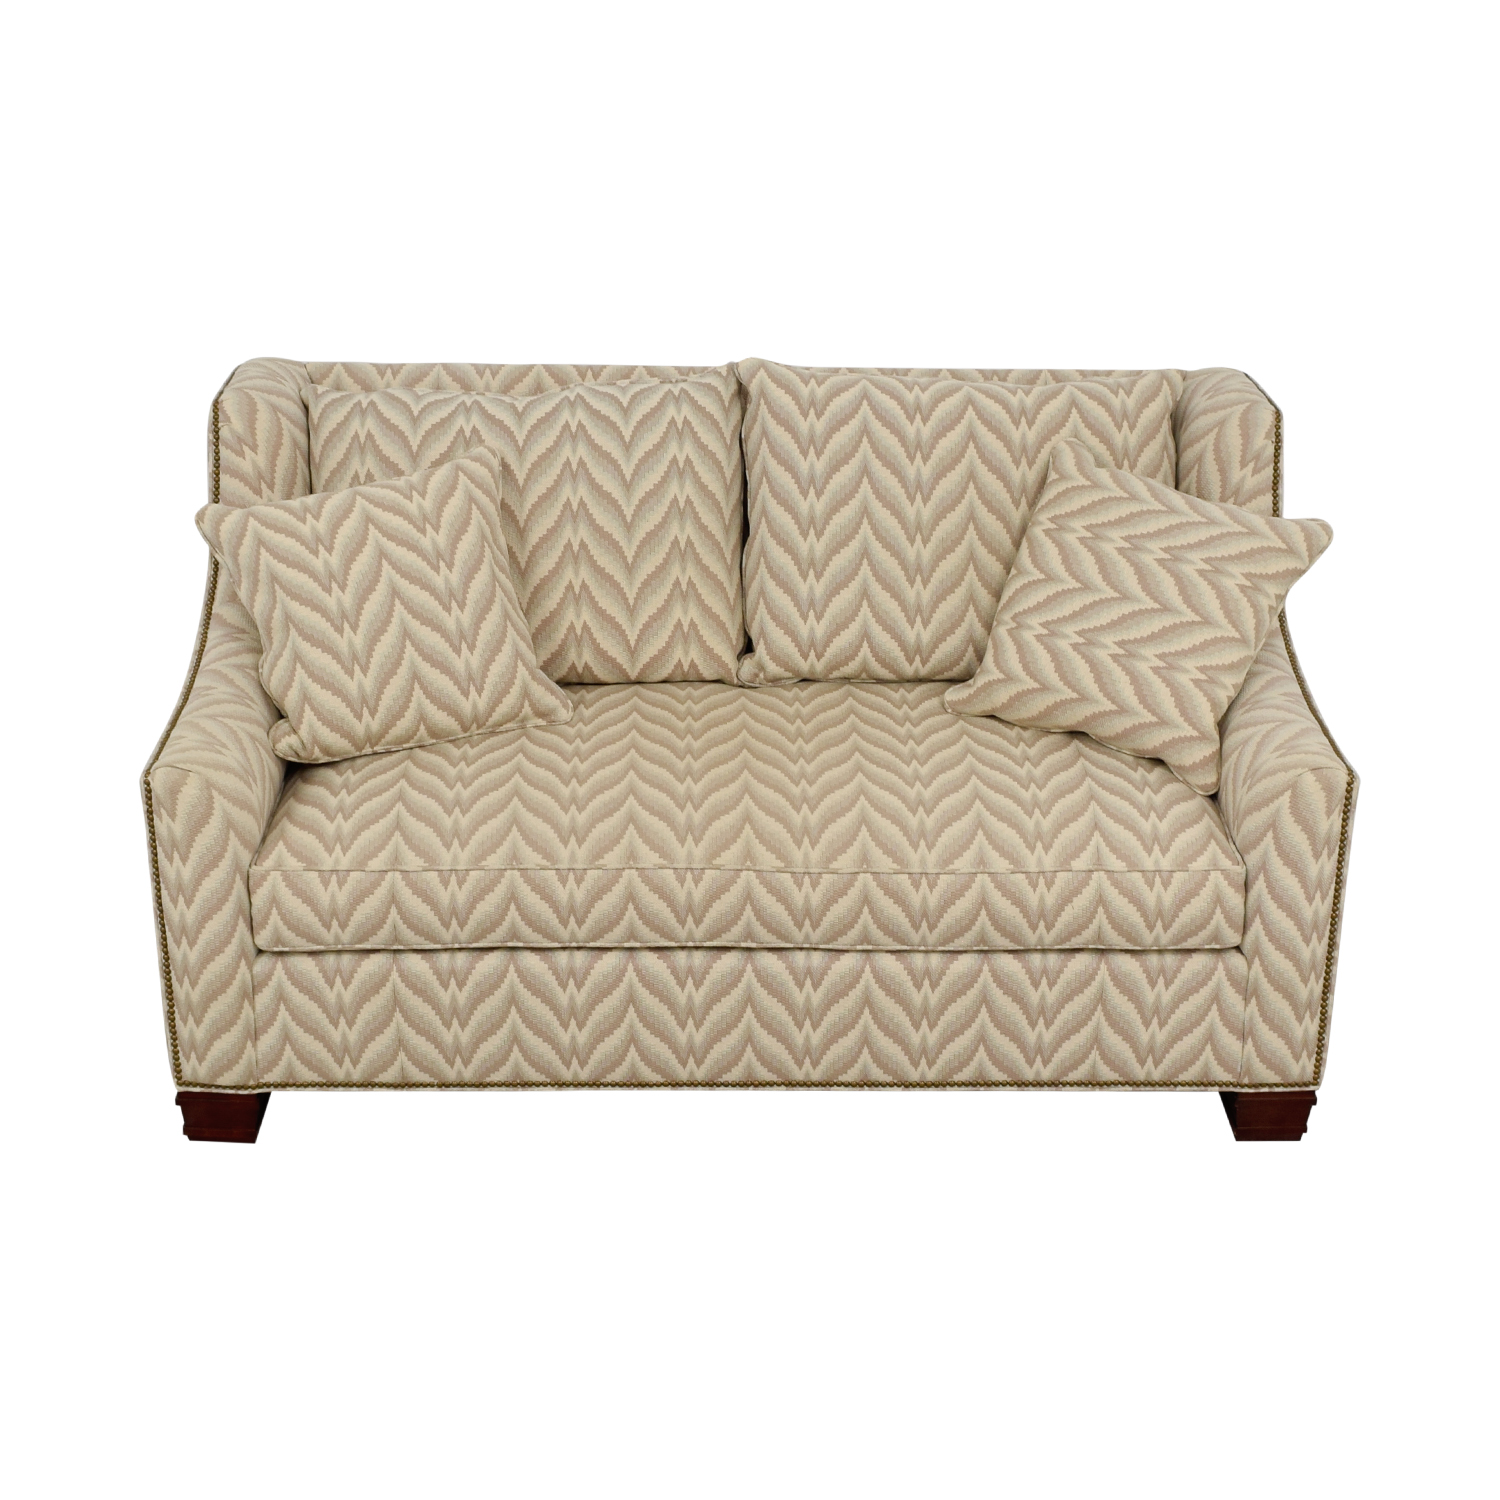 The Hickory Chair Furniture Co. The Hickory Chair Furniture Co. Chevron Nailhead Loveseat for sale